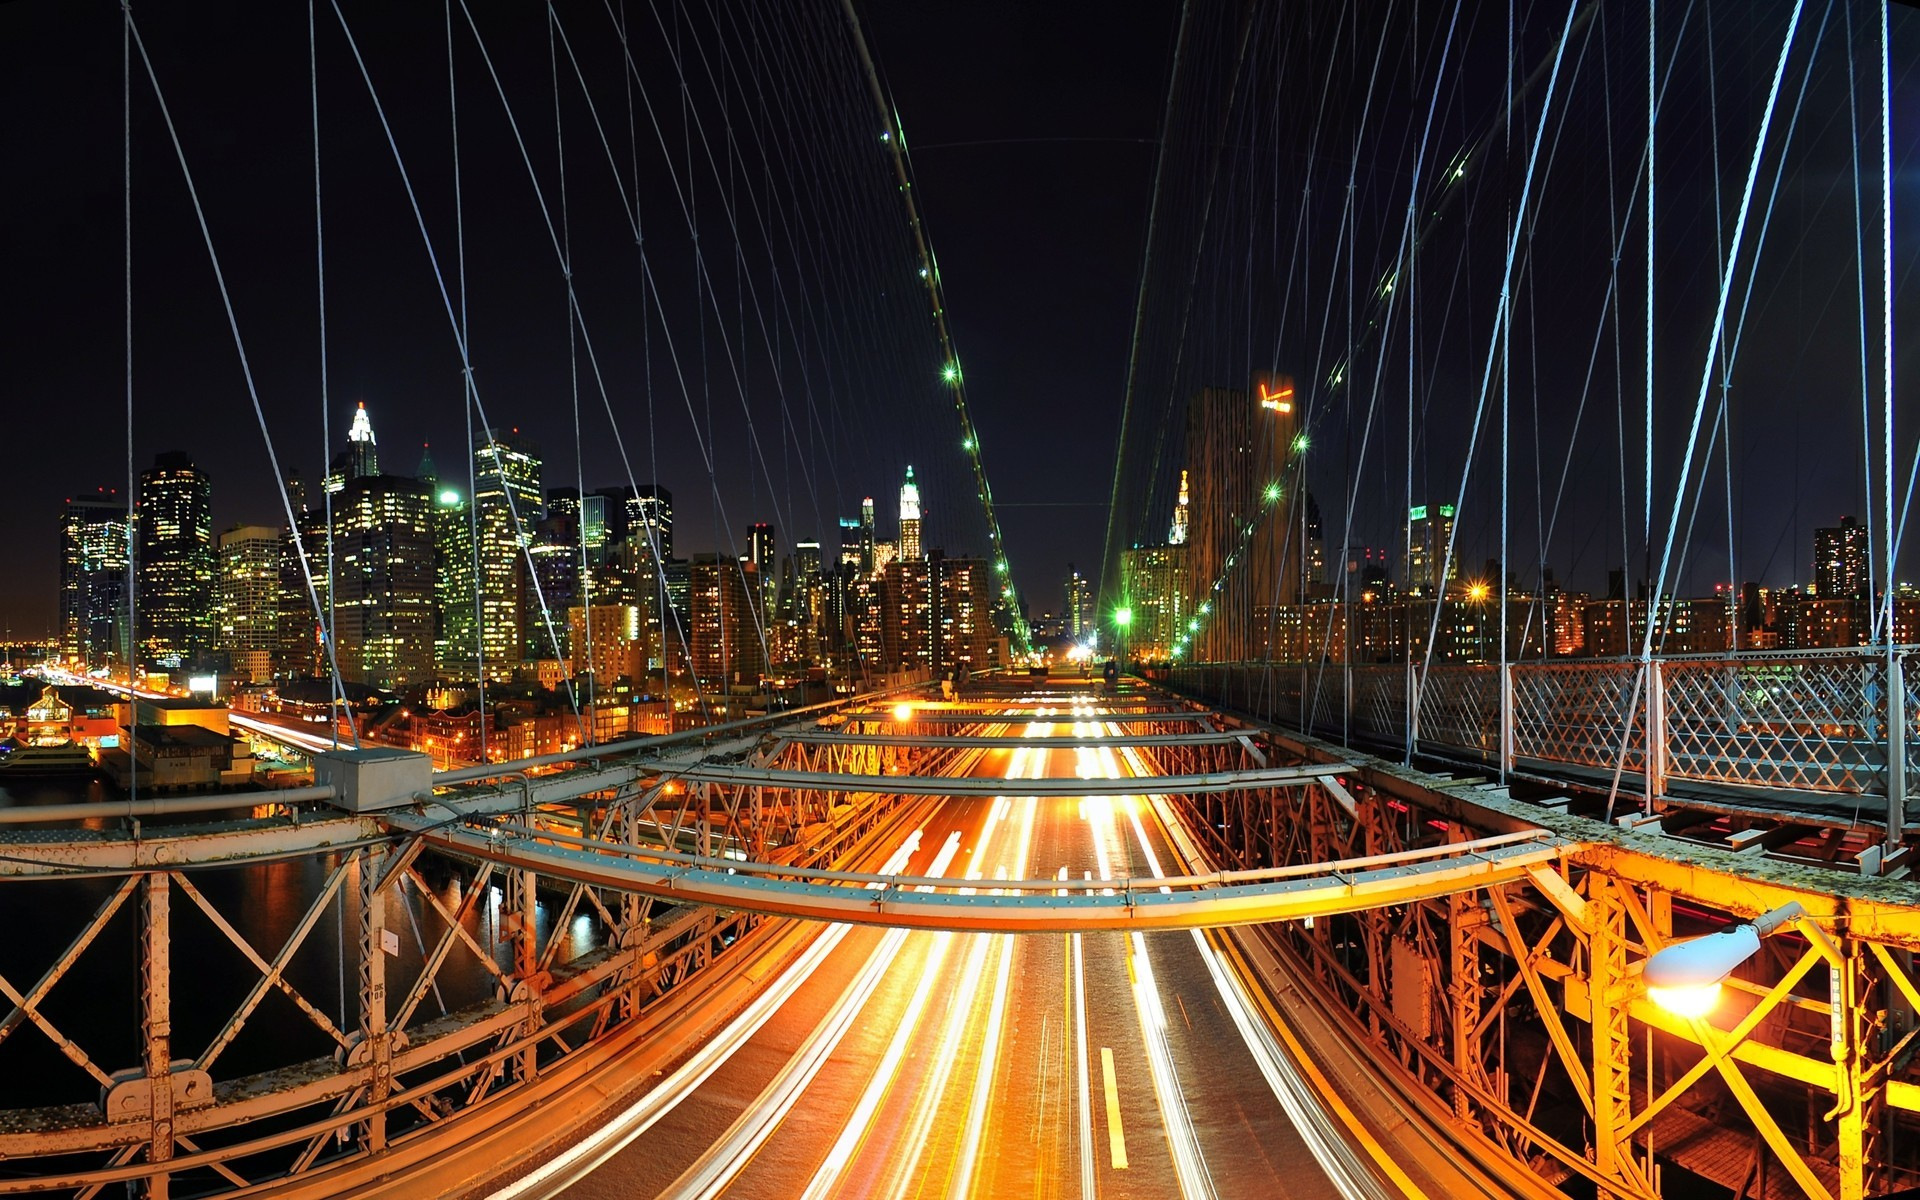 cityscapes lights Bridges urban HD Wallpaper